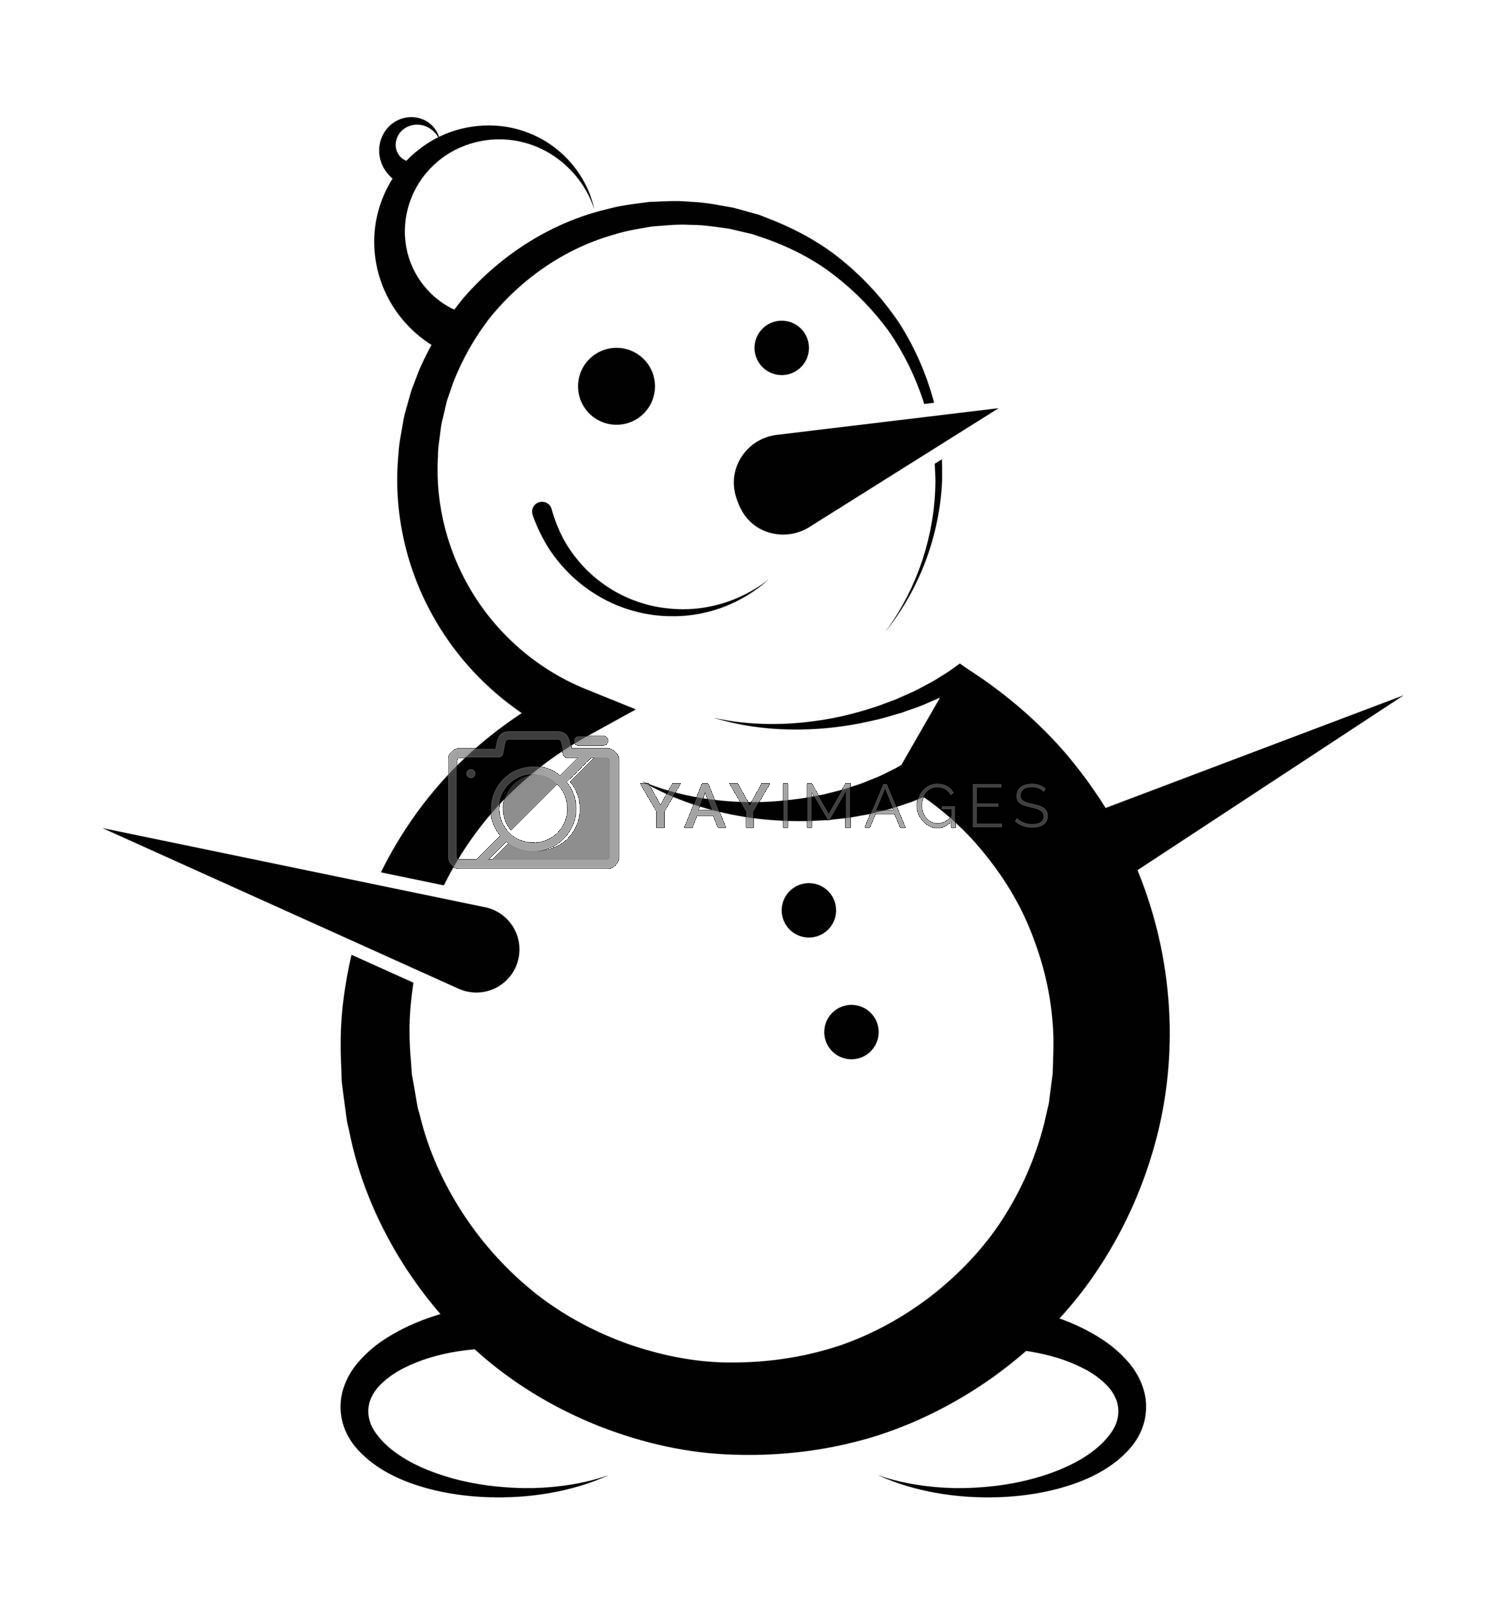 Snowman icon. Cheerful snowman in winter clothes. Meeting of Christmas and New Year. Winter fun. Cartoon vector